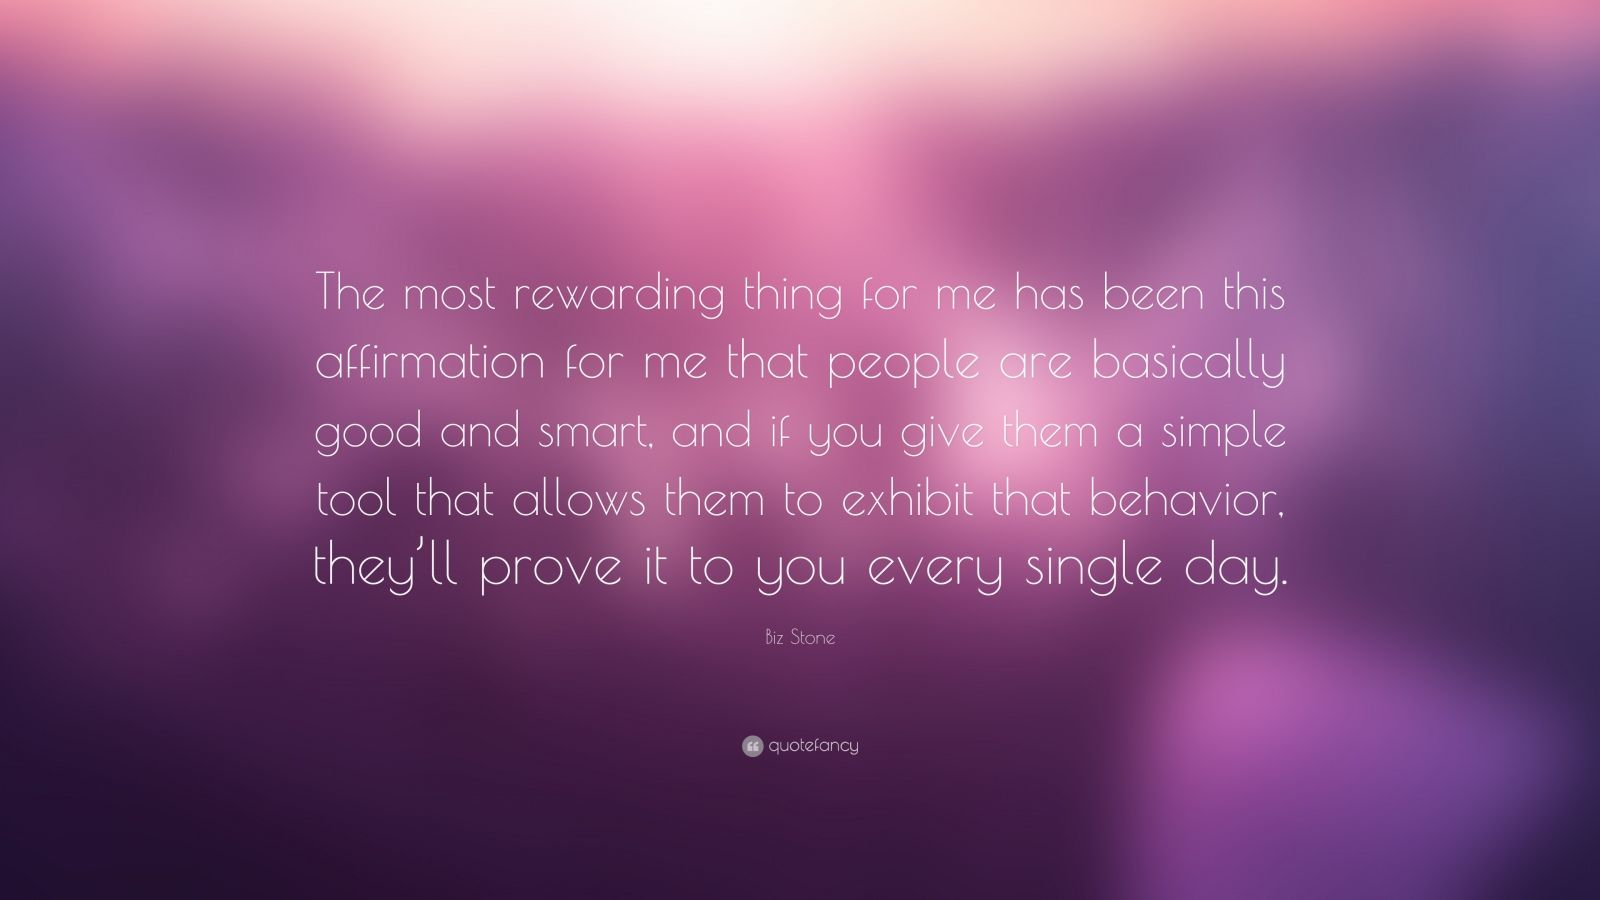 """Biz Stone Quote: """"The most rewarding thing for me has been this affirmation for me that people are basically good and smart, and if you give them a simple tool that allows them to exhibit that behavior, they'll prove it to you every single day."""""""